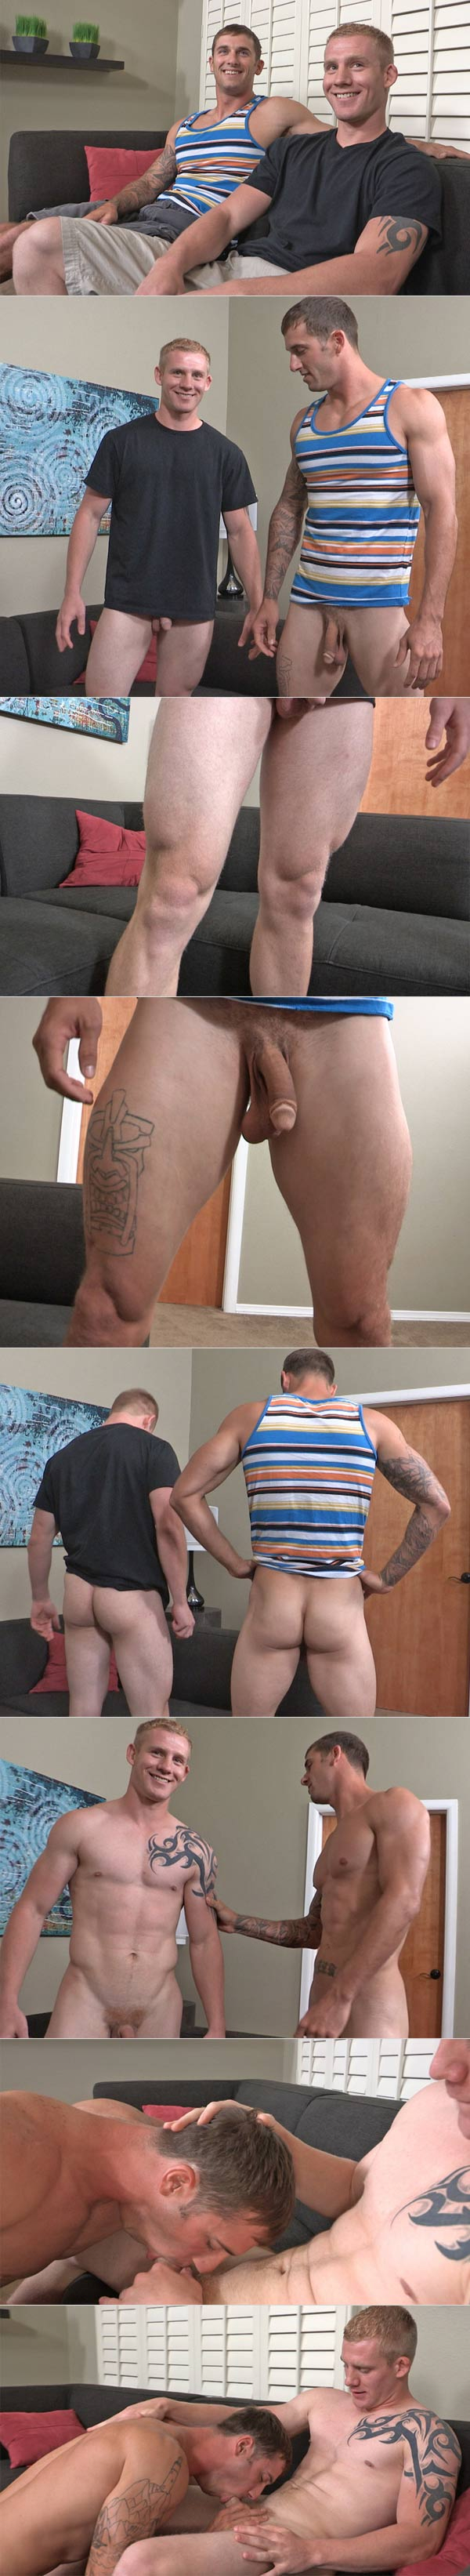 Tim & Peter (Bareback) at SeanCody